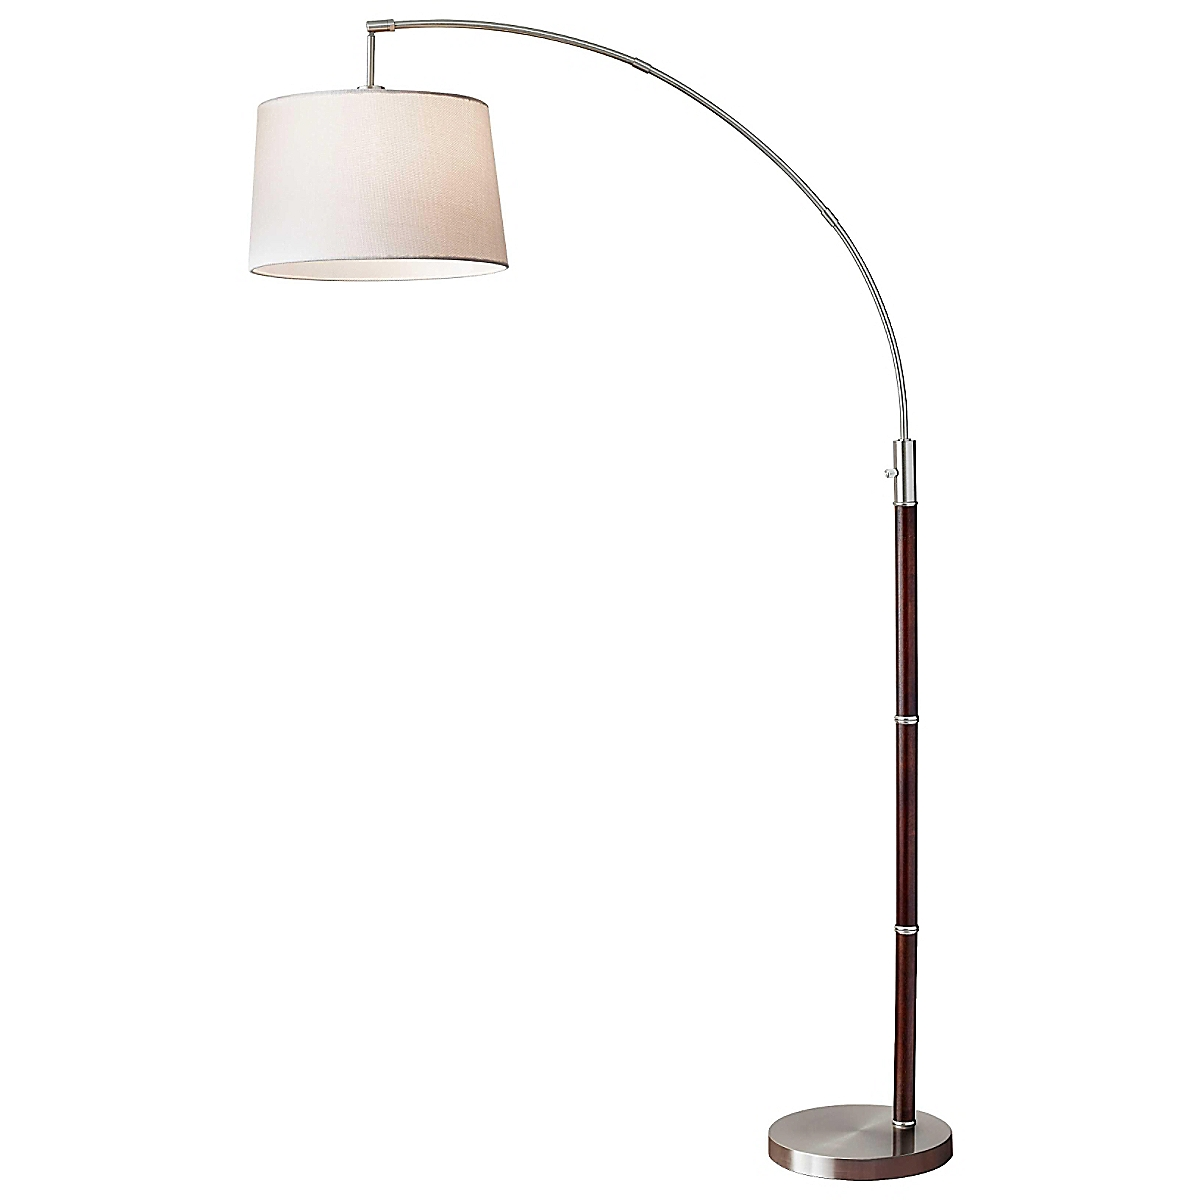 Adjustable Arc Floor Lamp